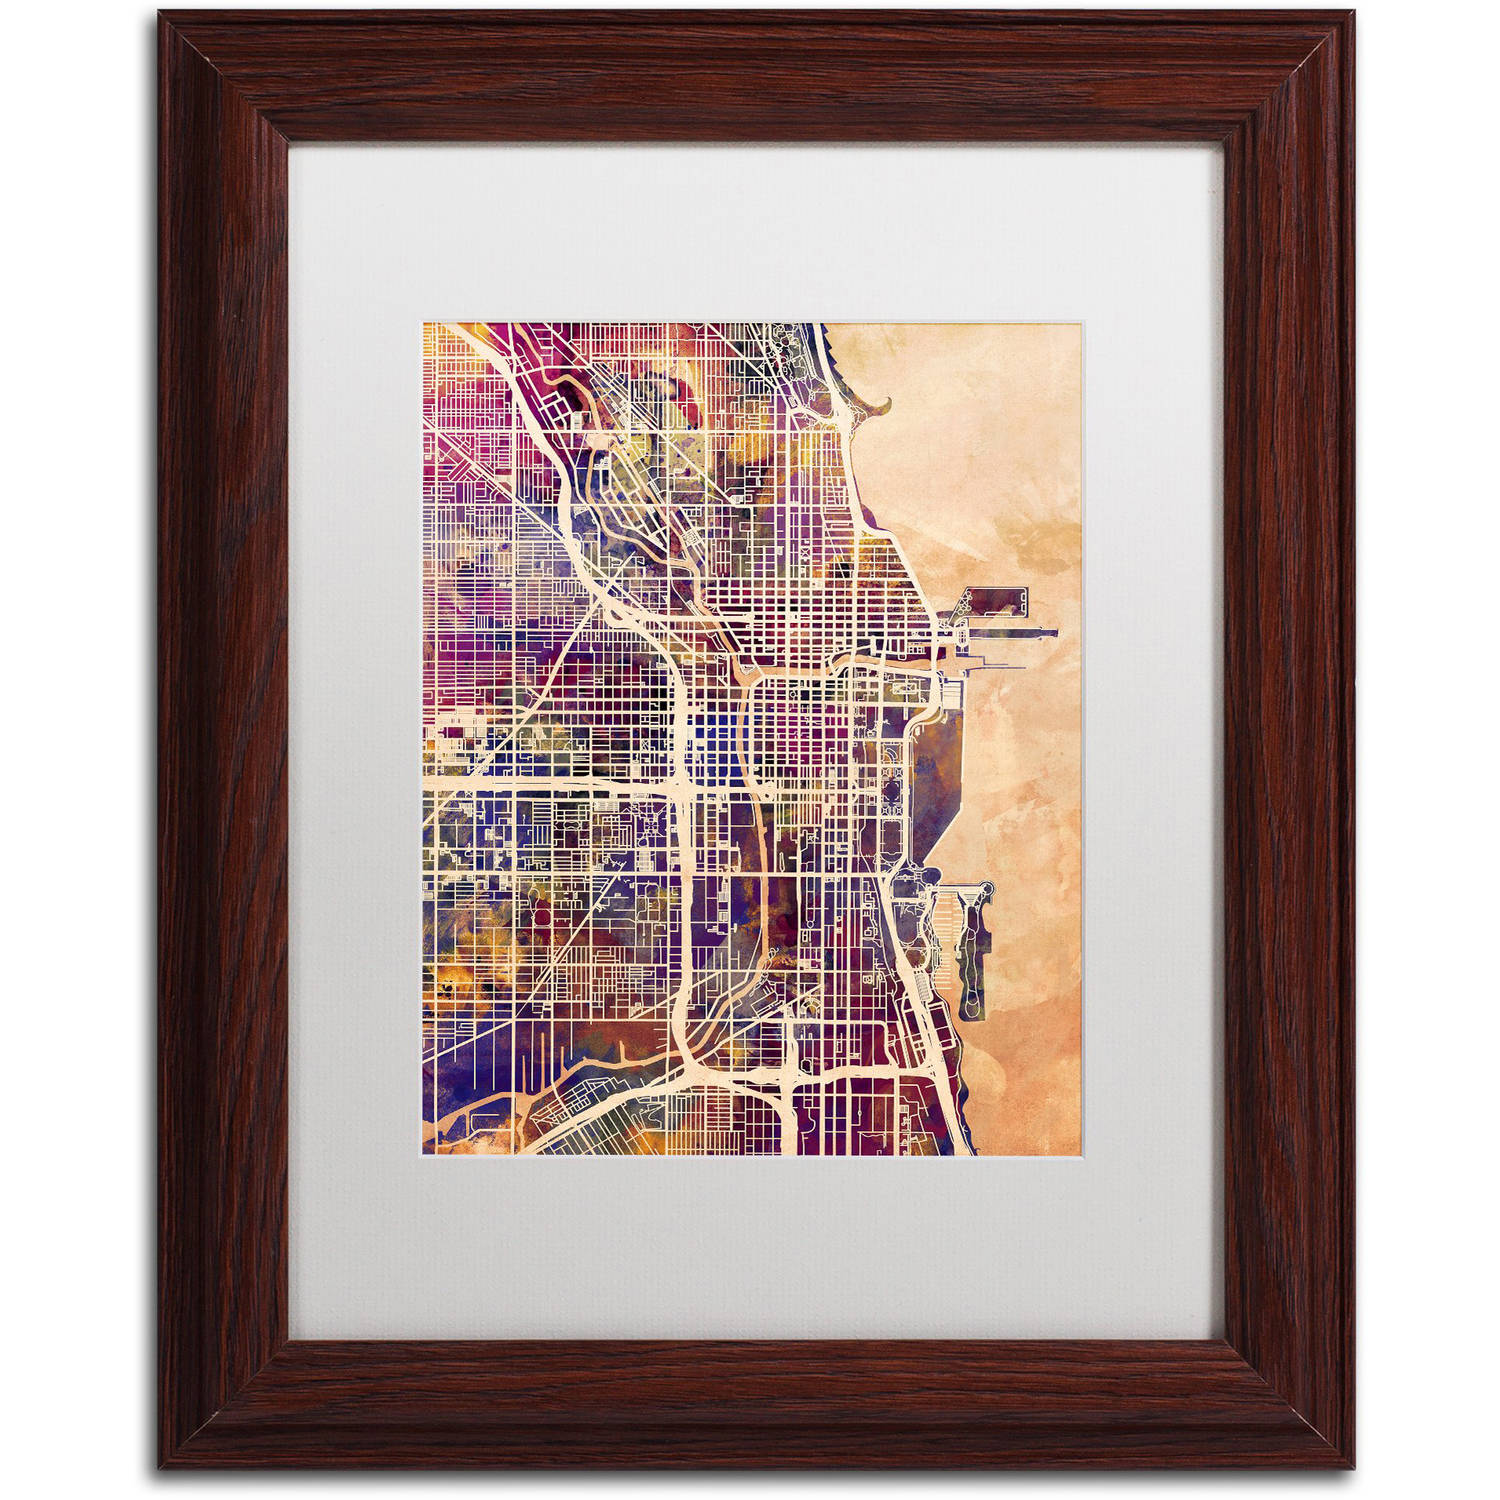 "Trademark Fine Art ""Chicago City Street Map"" Canvas Art by Michael Tompsett, White Matte, Wood Frame"